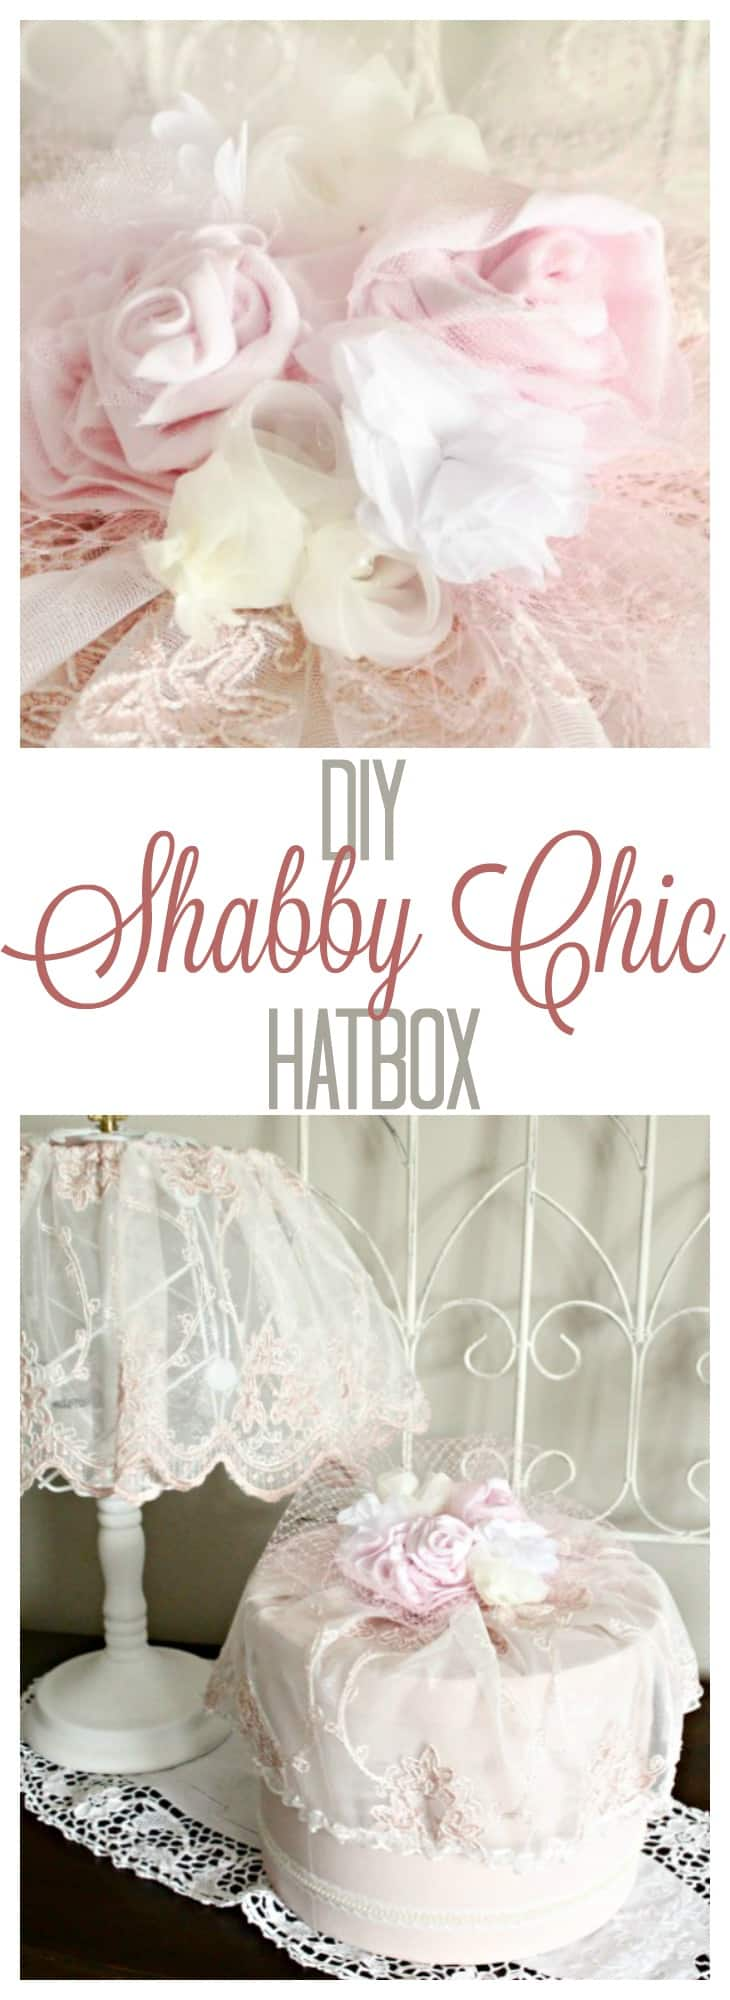 diy hatbox with vintage shabby chic style. Black Bedroom Furniture Sets. Home Design Ideas